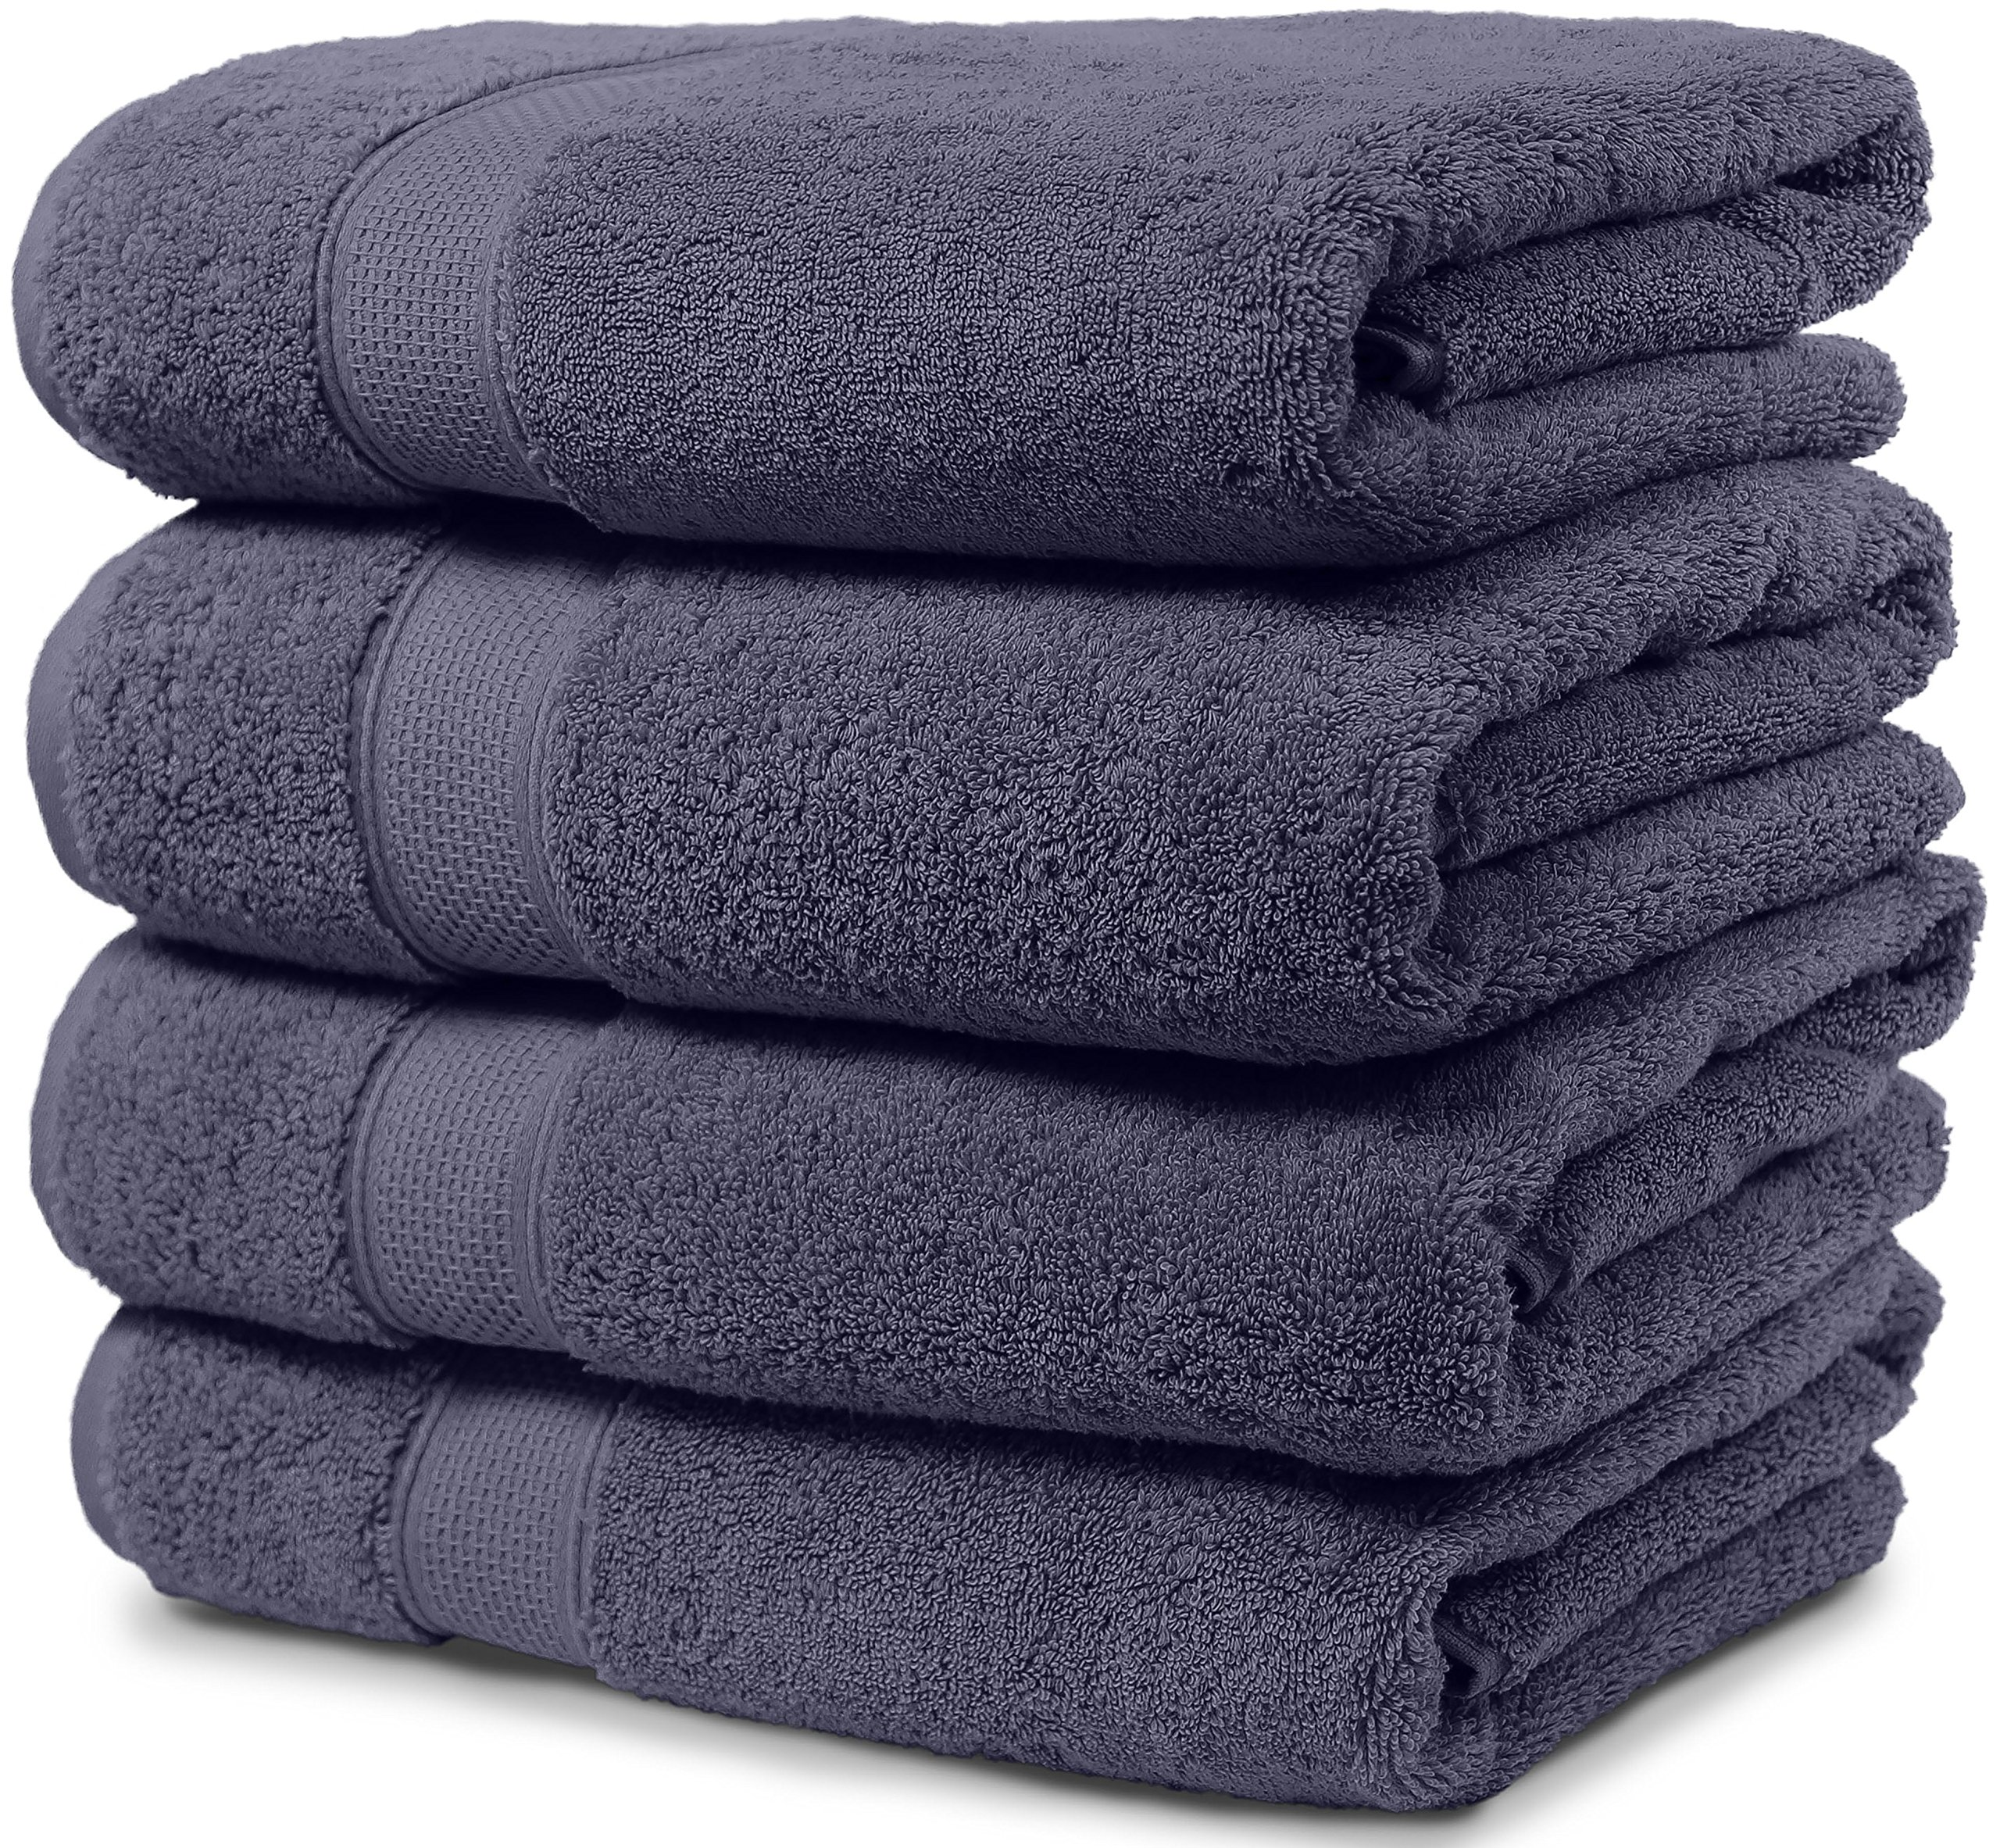 4 Piece Bath Towel Set. 2017(New Collection).Premium Quality Turkish Towels. Super Soft, Plush and Highly Absorbent. Set Includes 4 Pieces of Bath Towels. By Maura. (Bath Towel - Set of 4, Denim Blue)